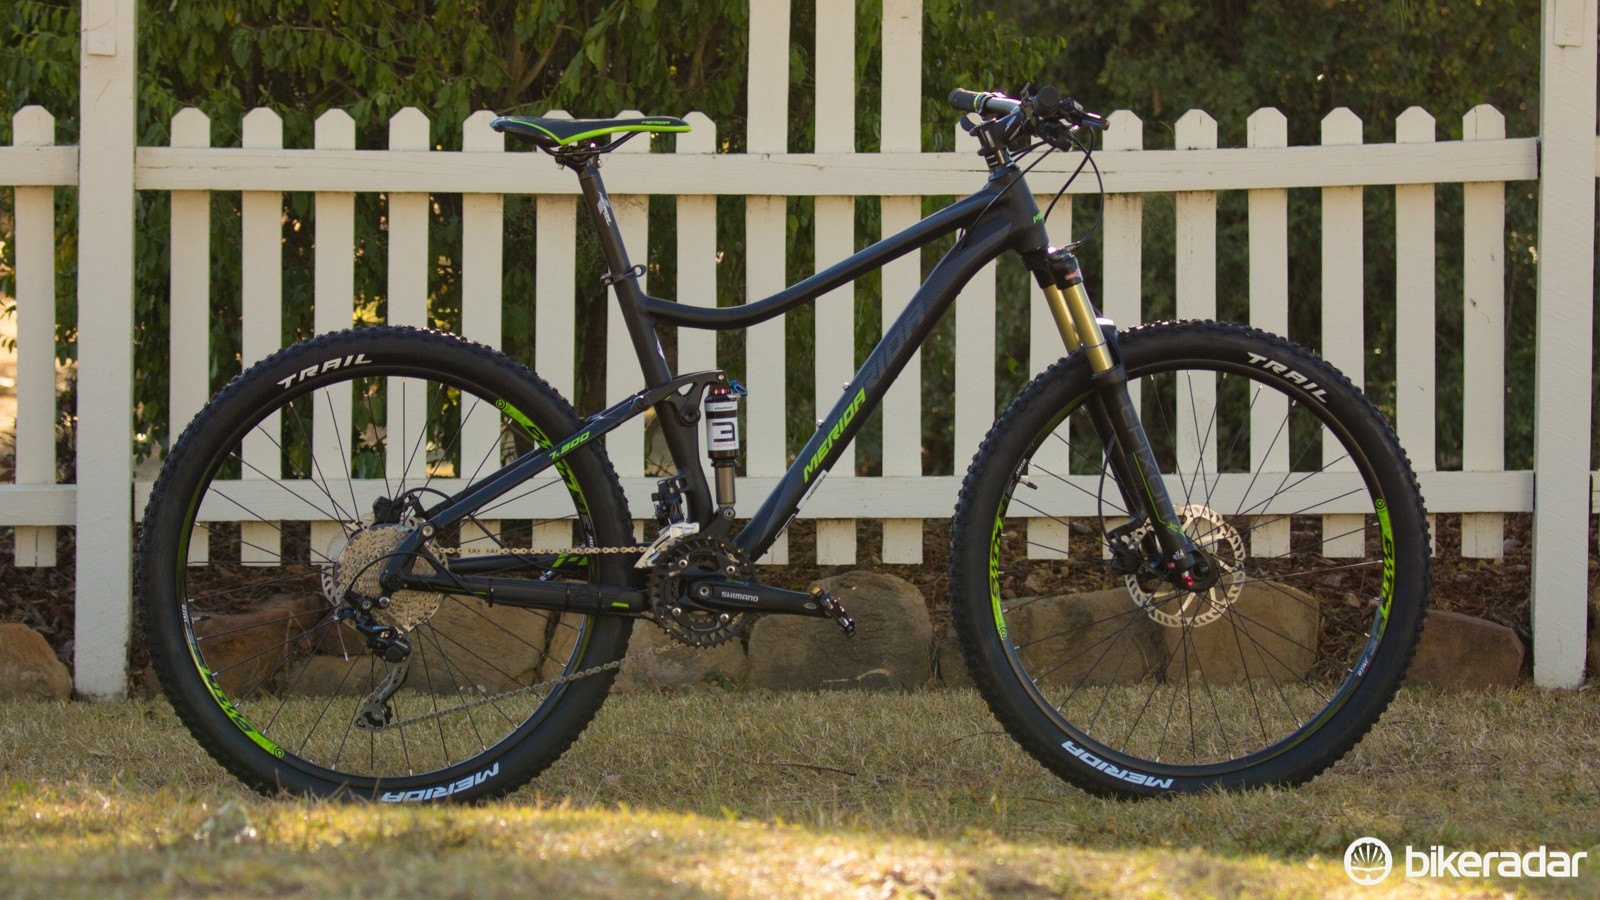 The new Merida One-Twenty 7.500 (US$TBC / AU$1,799 / UK£TBC) uses a slightly cheaper frame than the 7.900, which does away with the hydroformed tapered head tube. Nevertheless, this looks to be a rocking dual-suspension starter bike for the money